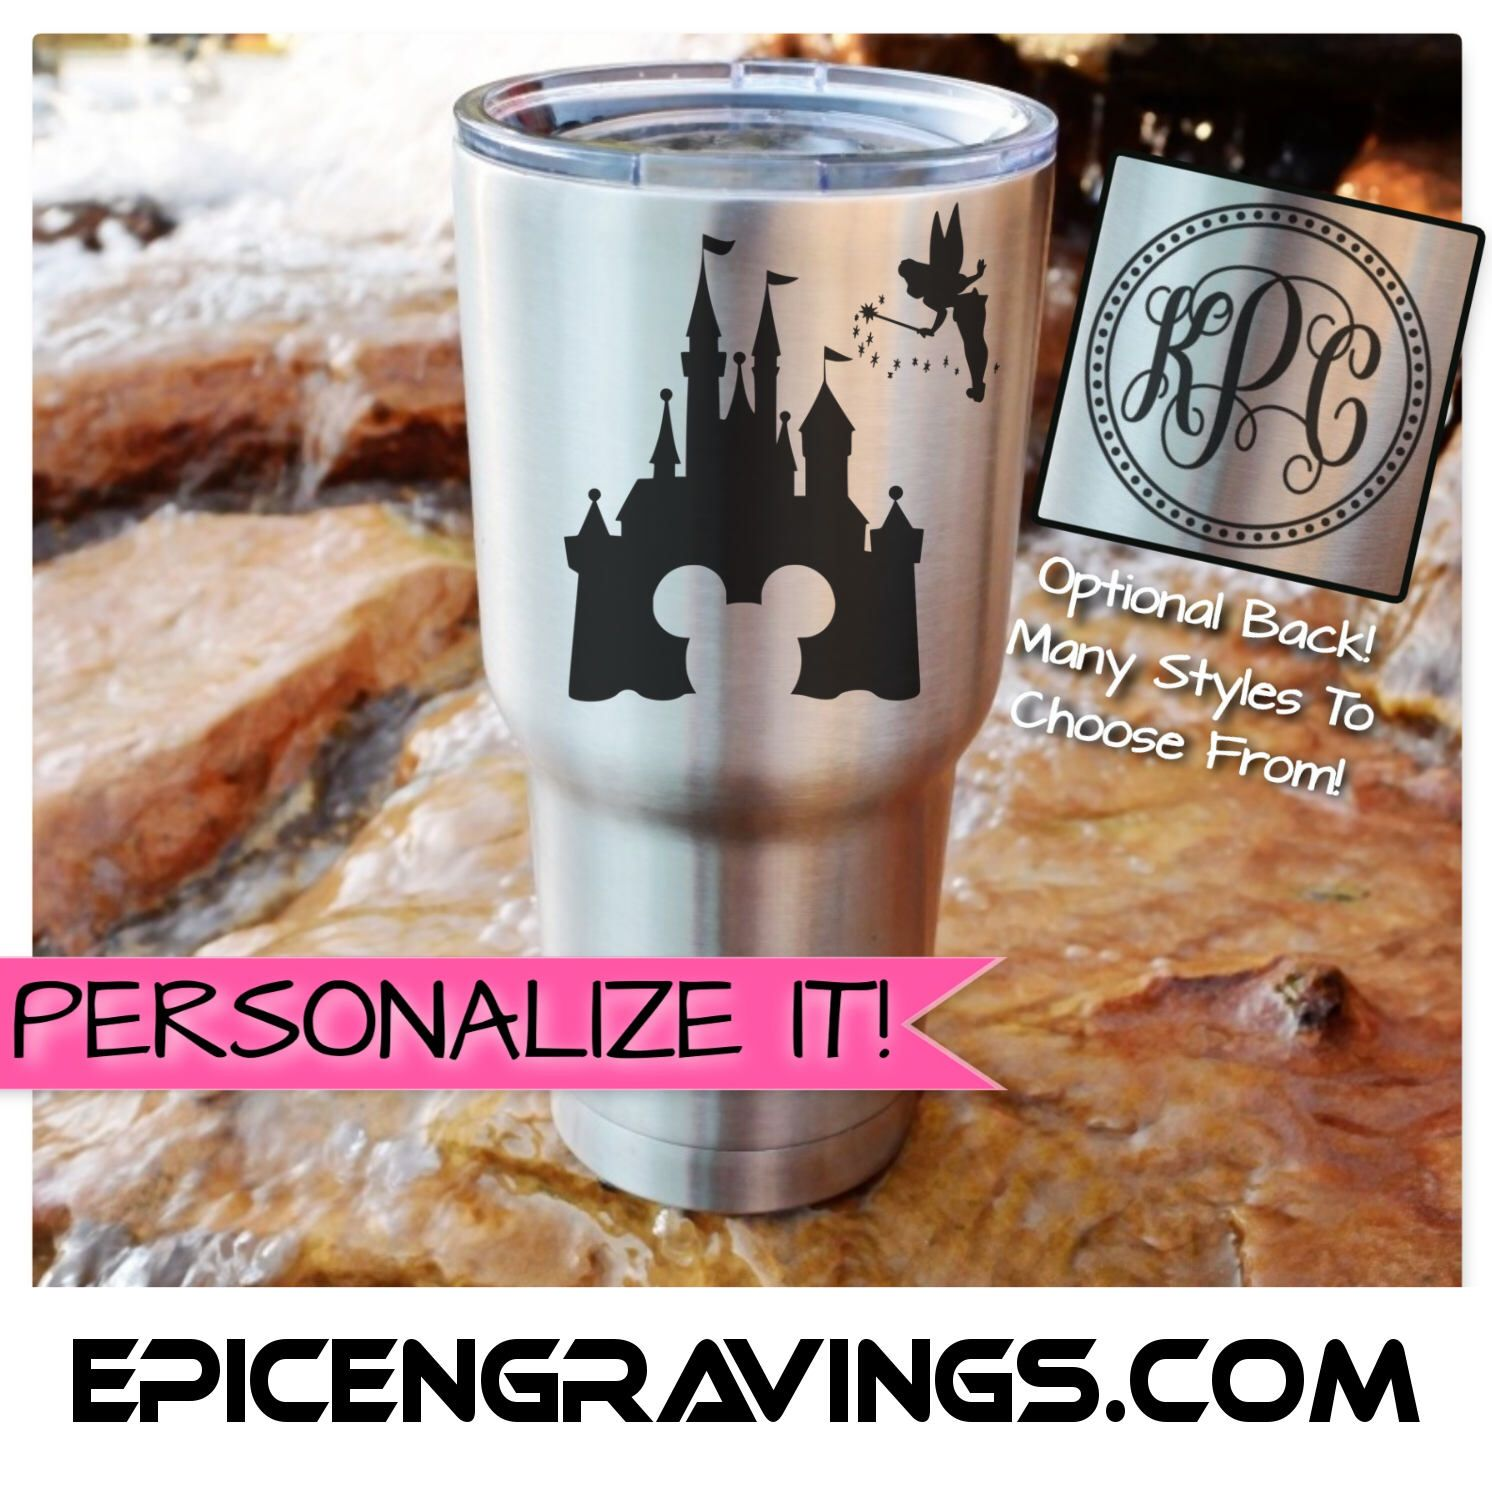 Items similar to YETI or RTIC Engraved Tumbler/Disney Cup/Disney Trip/Disney Gear/Mickey/Minnie/Disney Castle/Tinkerbell/Custom Tumbler/Personalized Gift on Etsy #disneycups